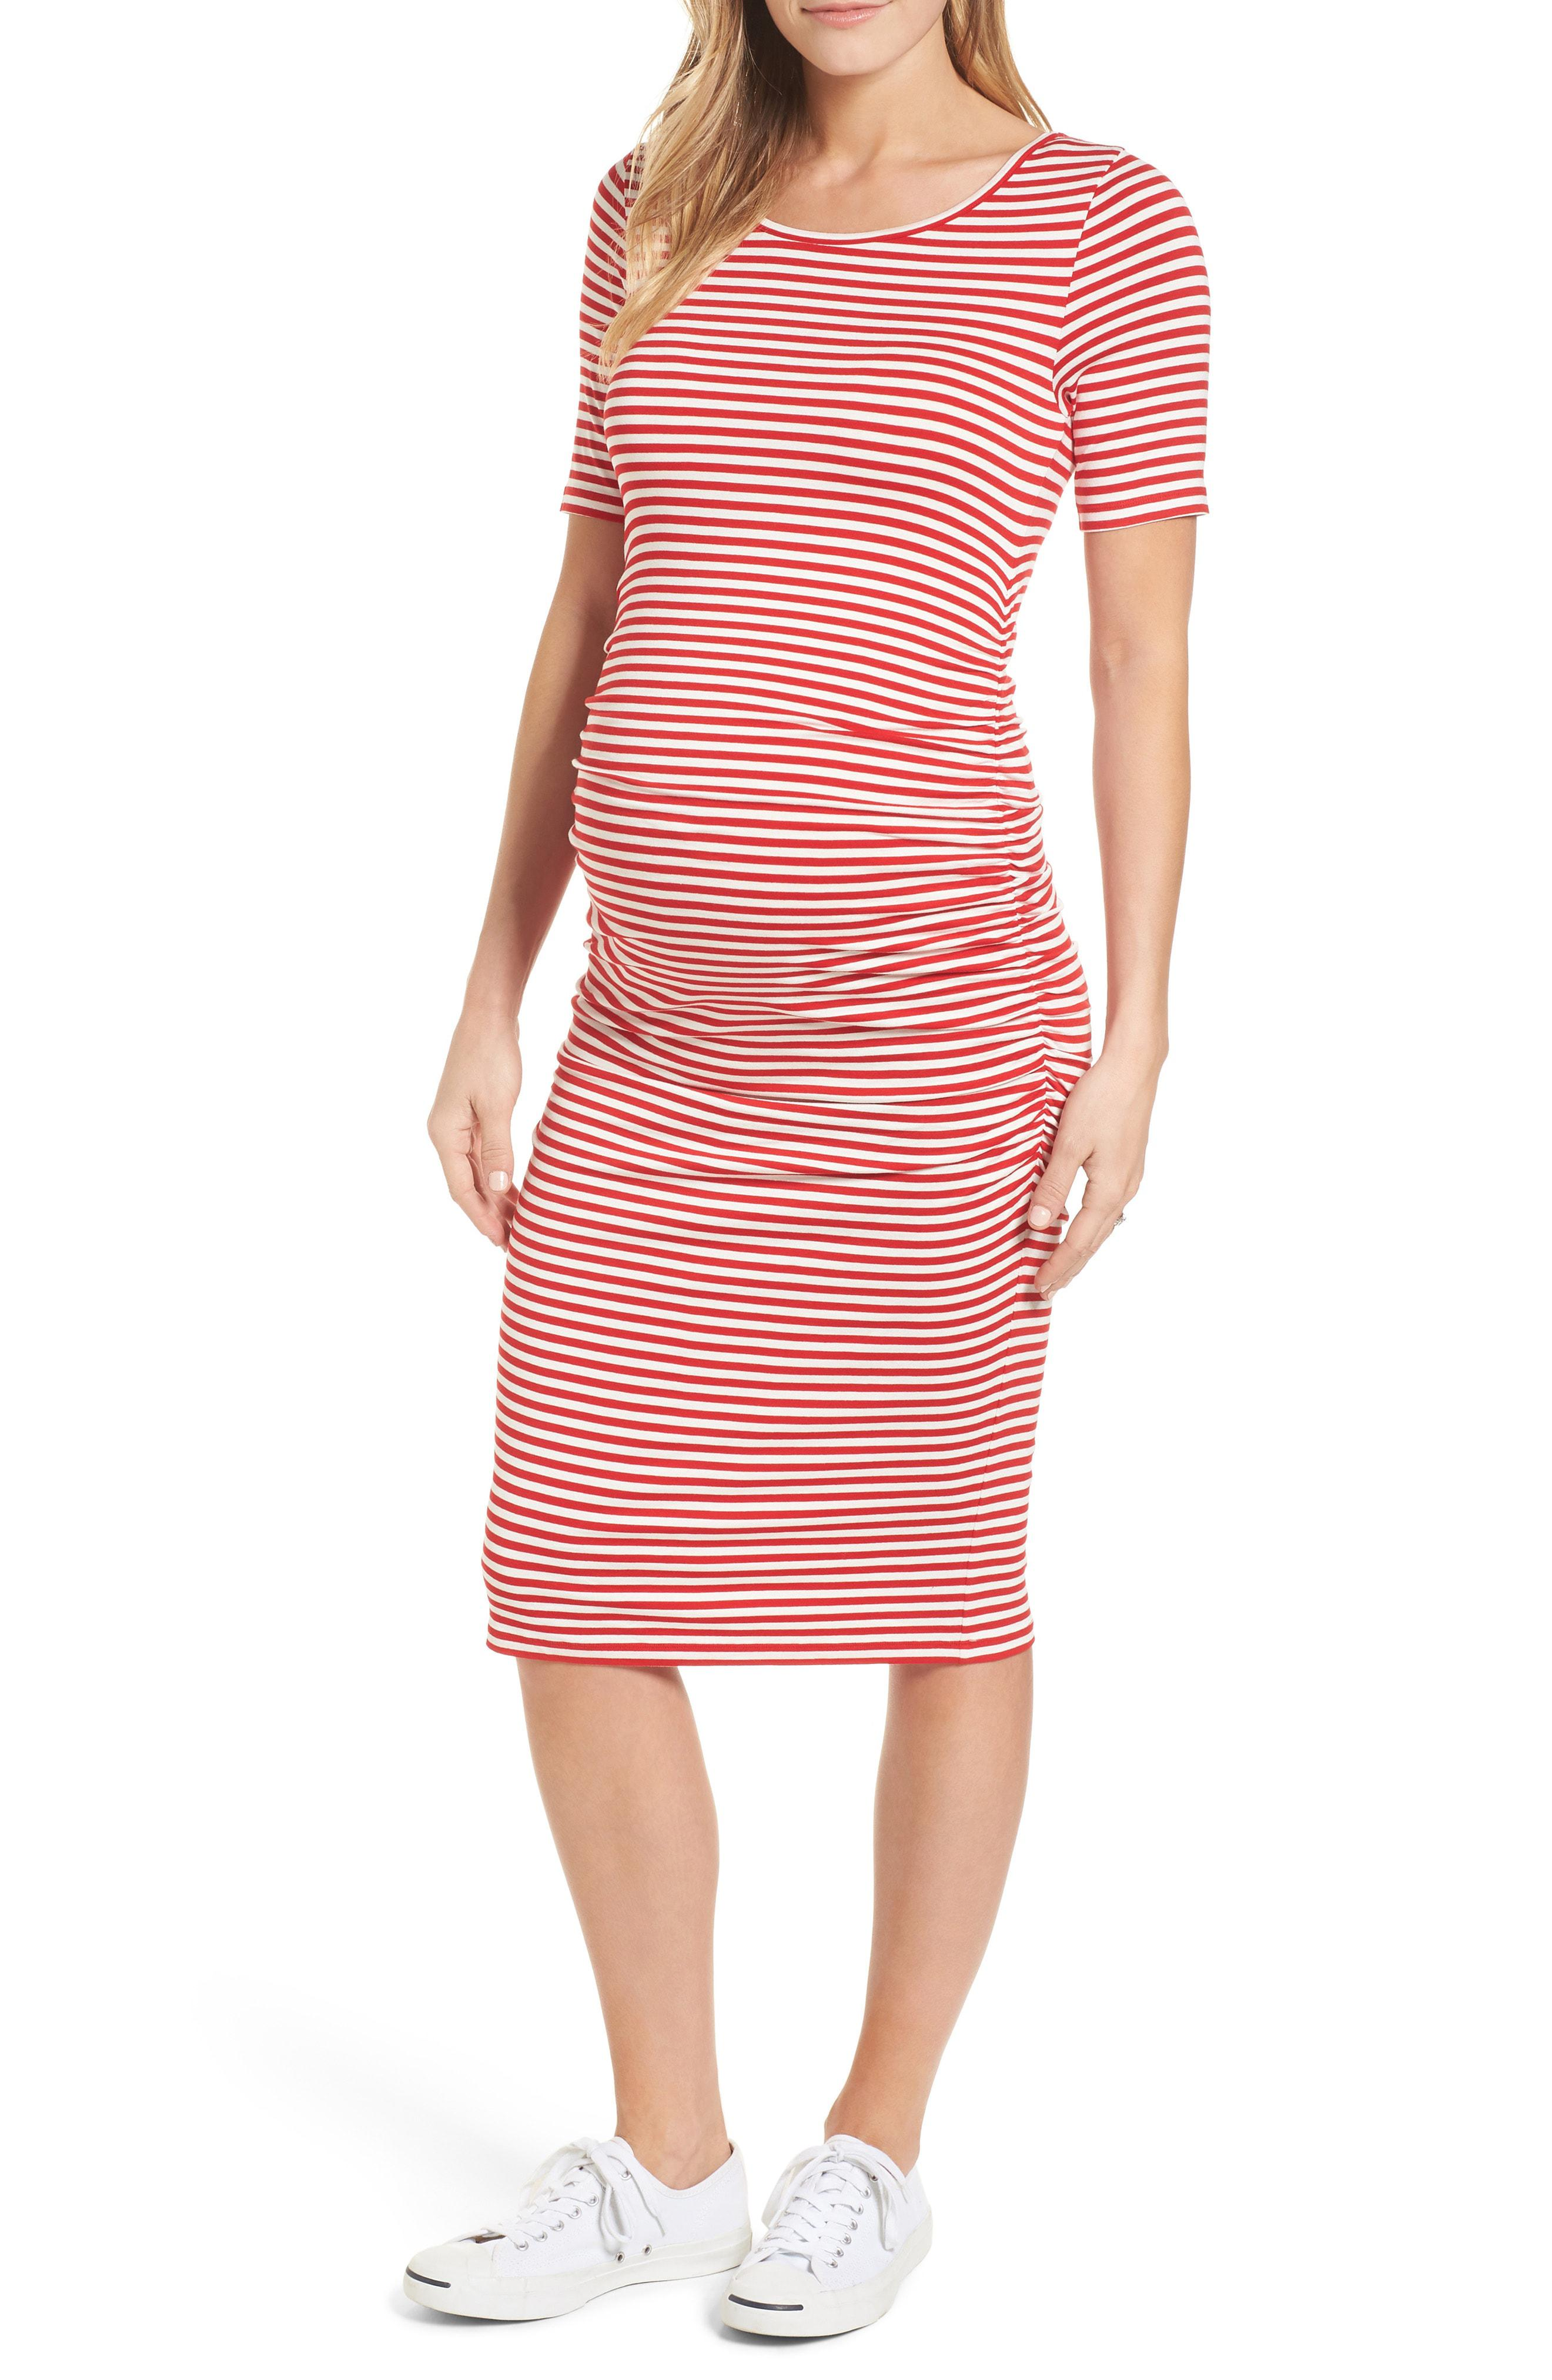 e535845a0ac Lyst - Isabella Oliver Jenna Stripe Maternity T-shirt Dress in Red